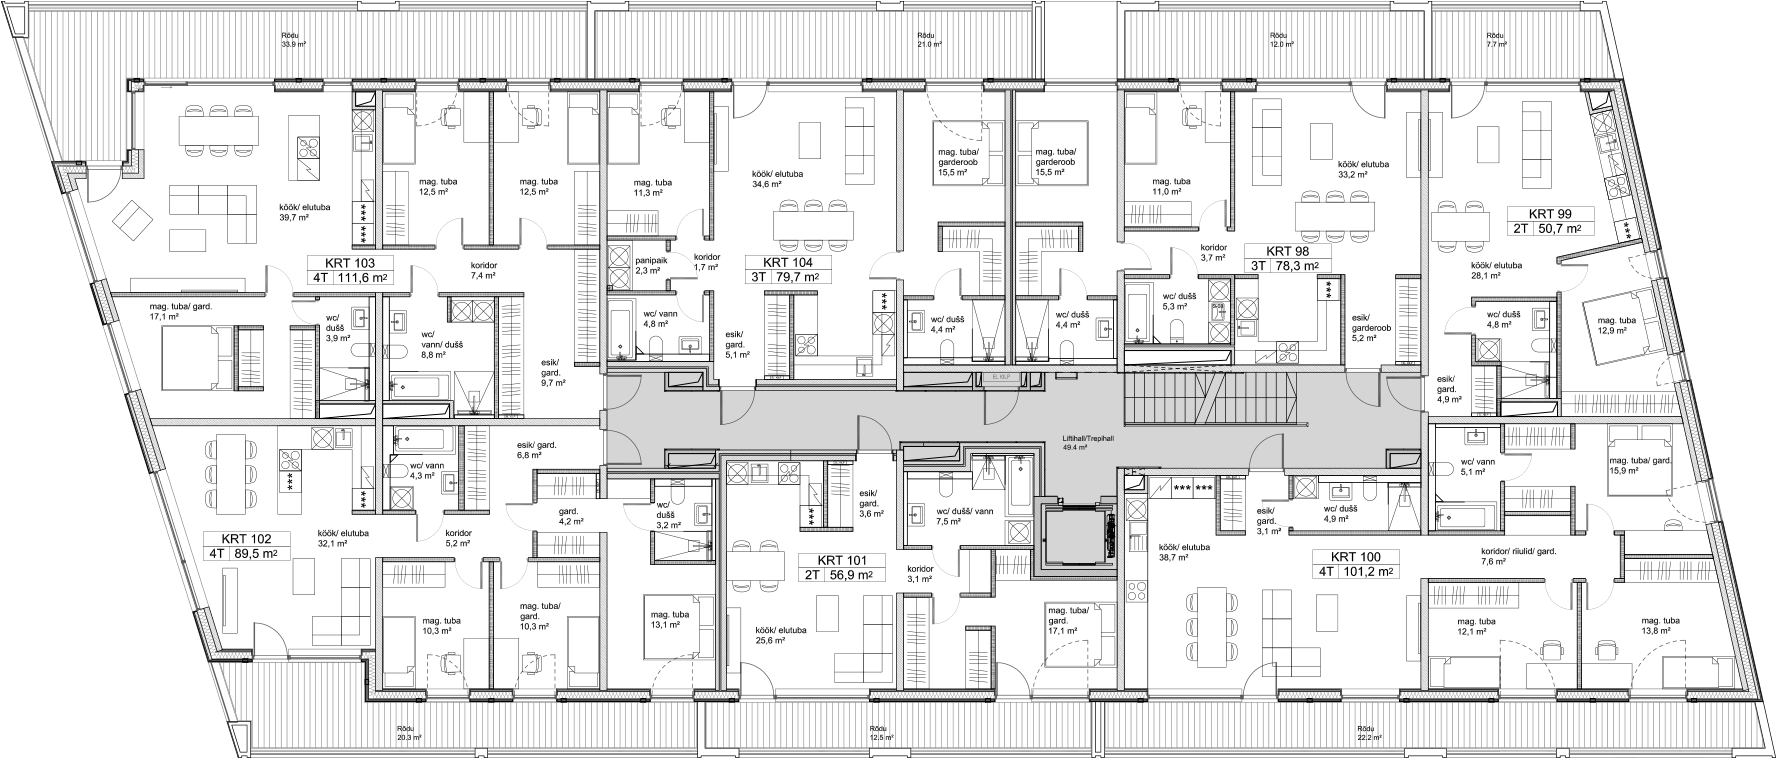 Floor 4 plan of Kiikri Apartment House C